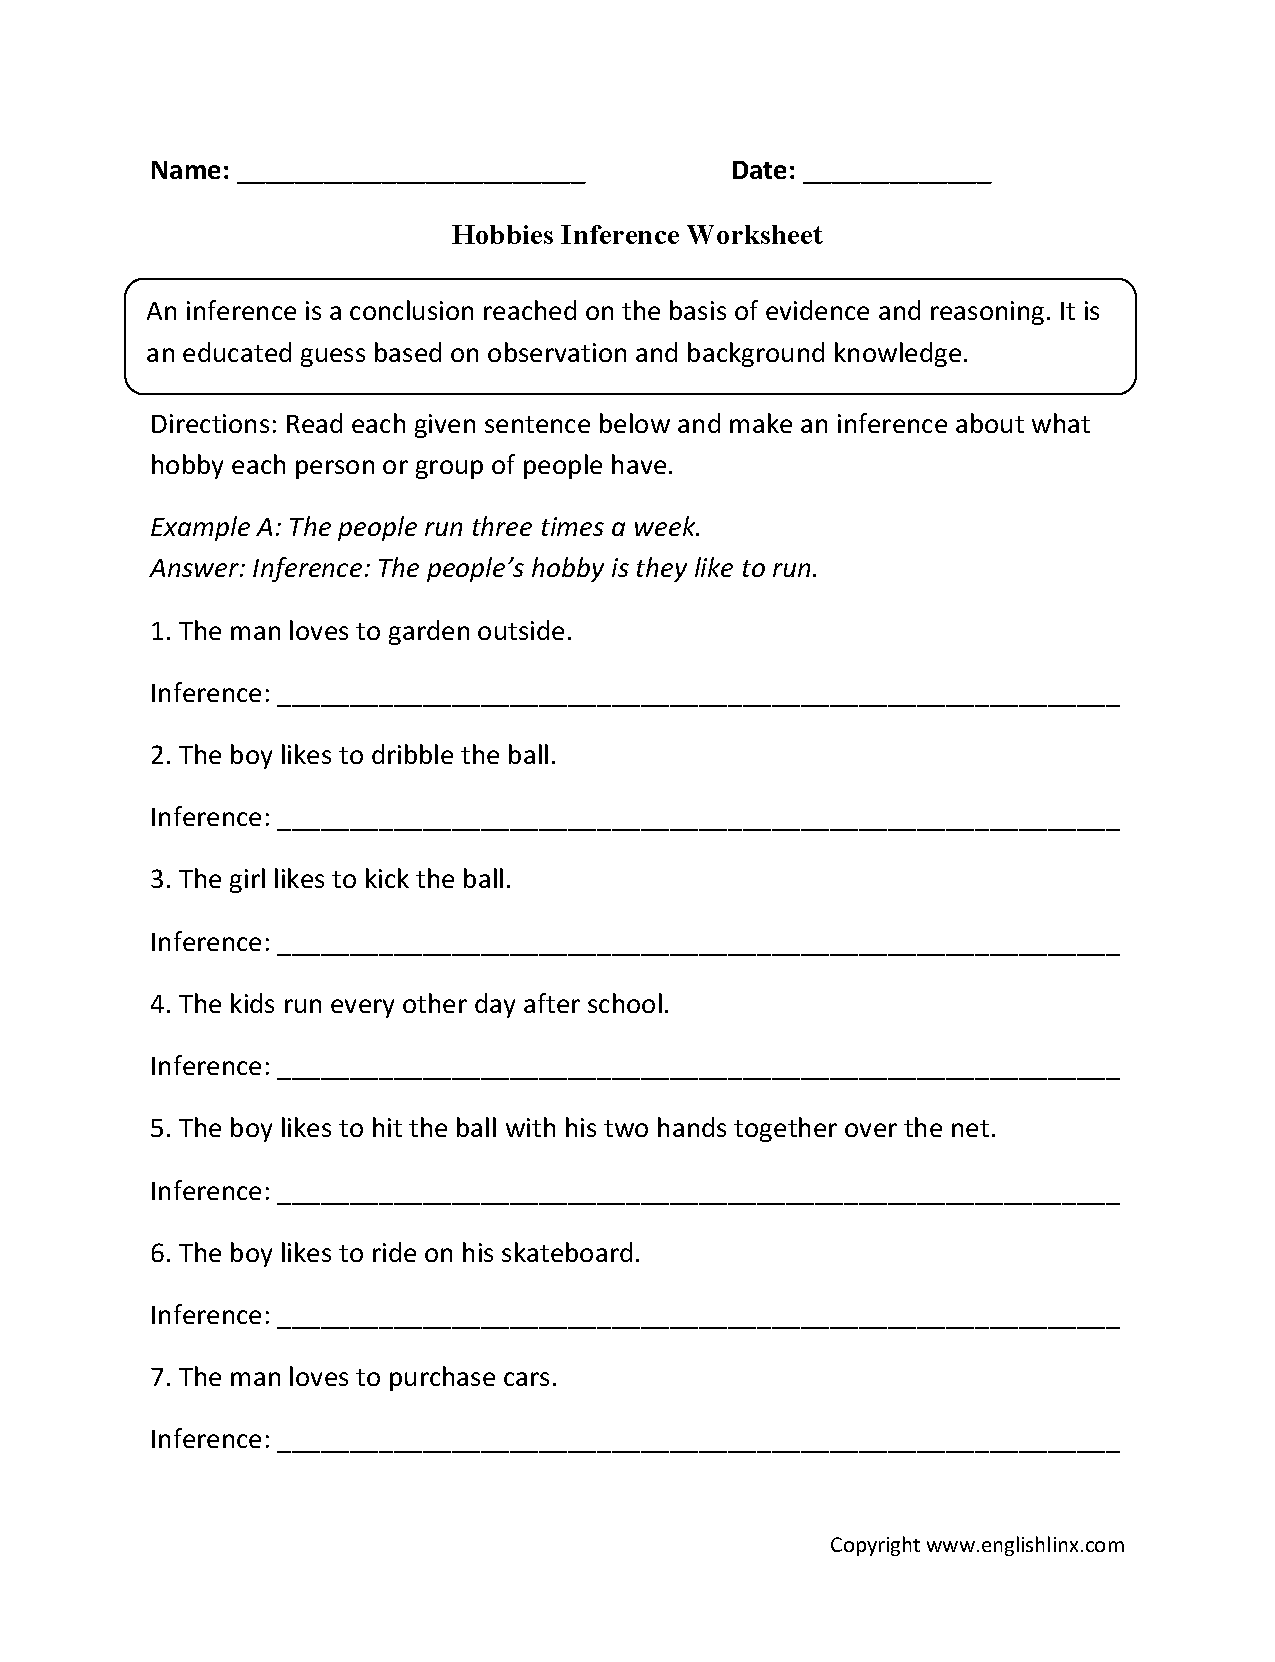 Hobbies Inference Worksheets